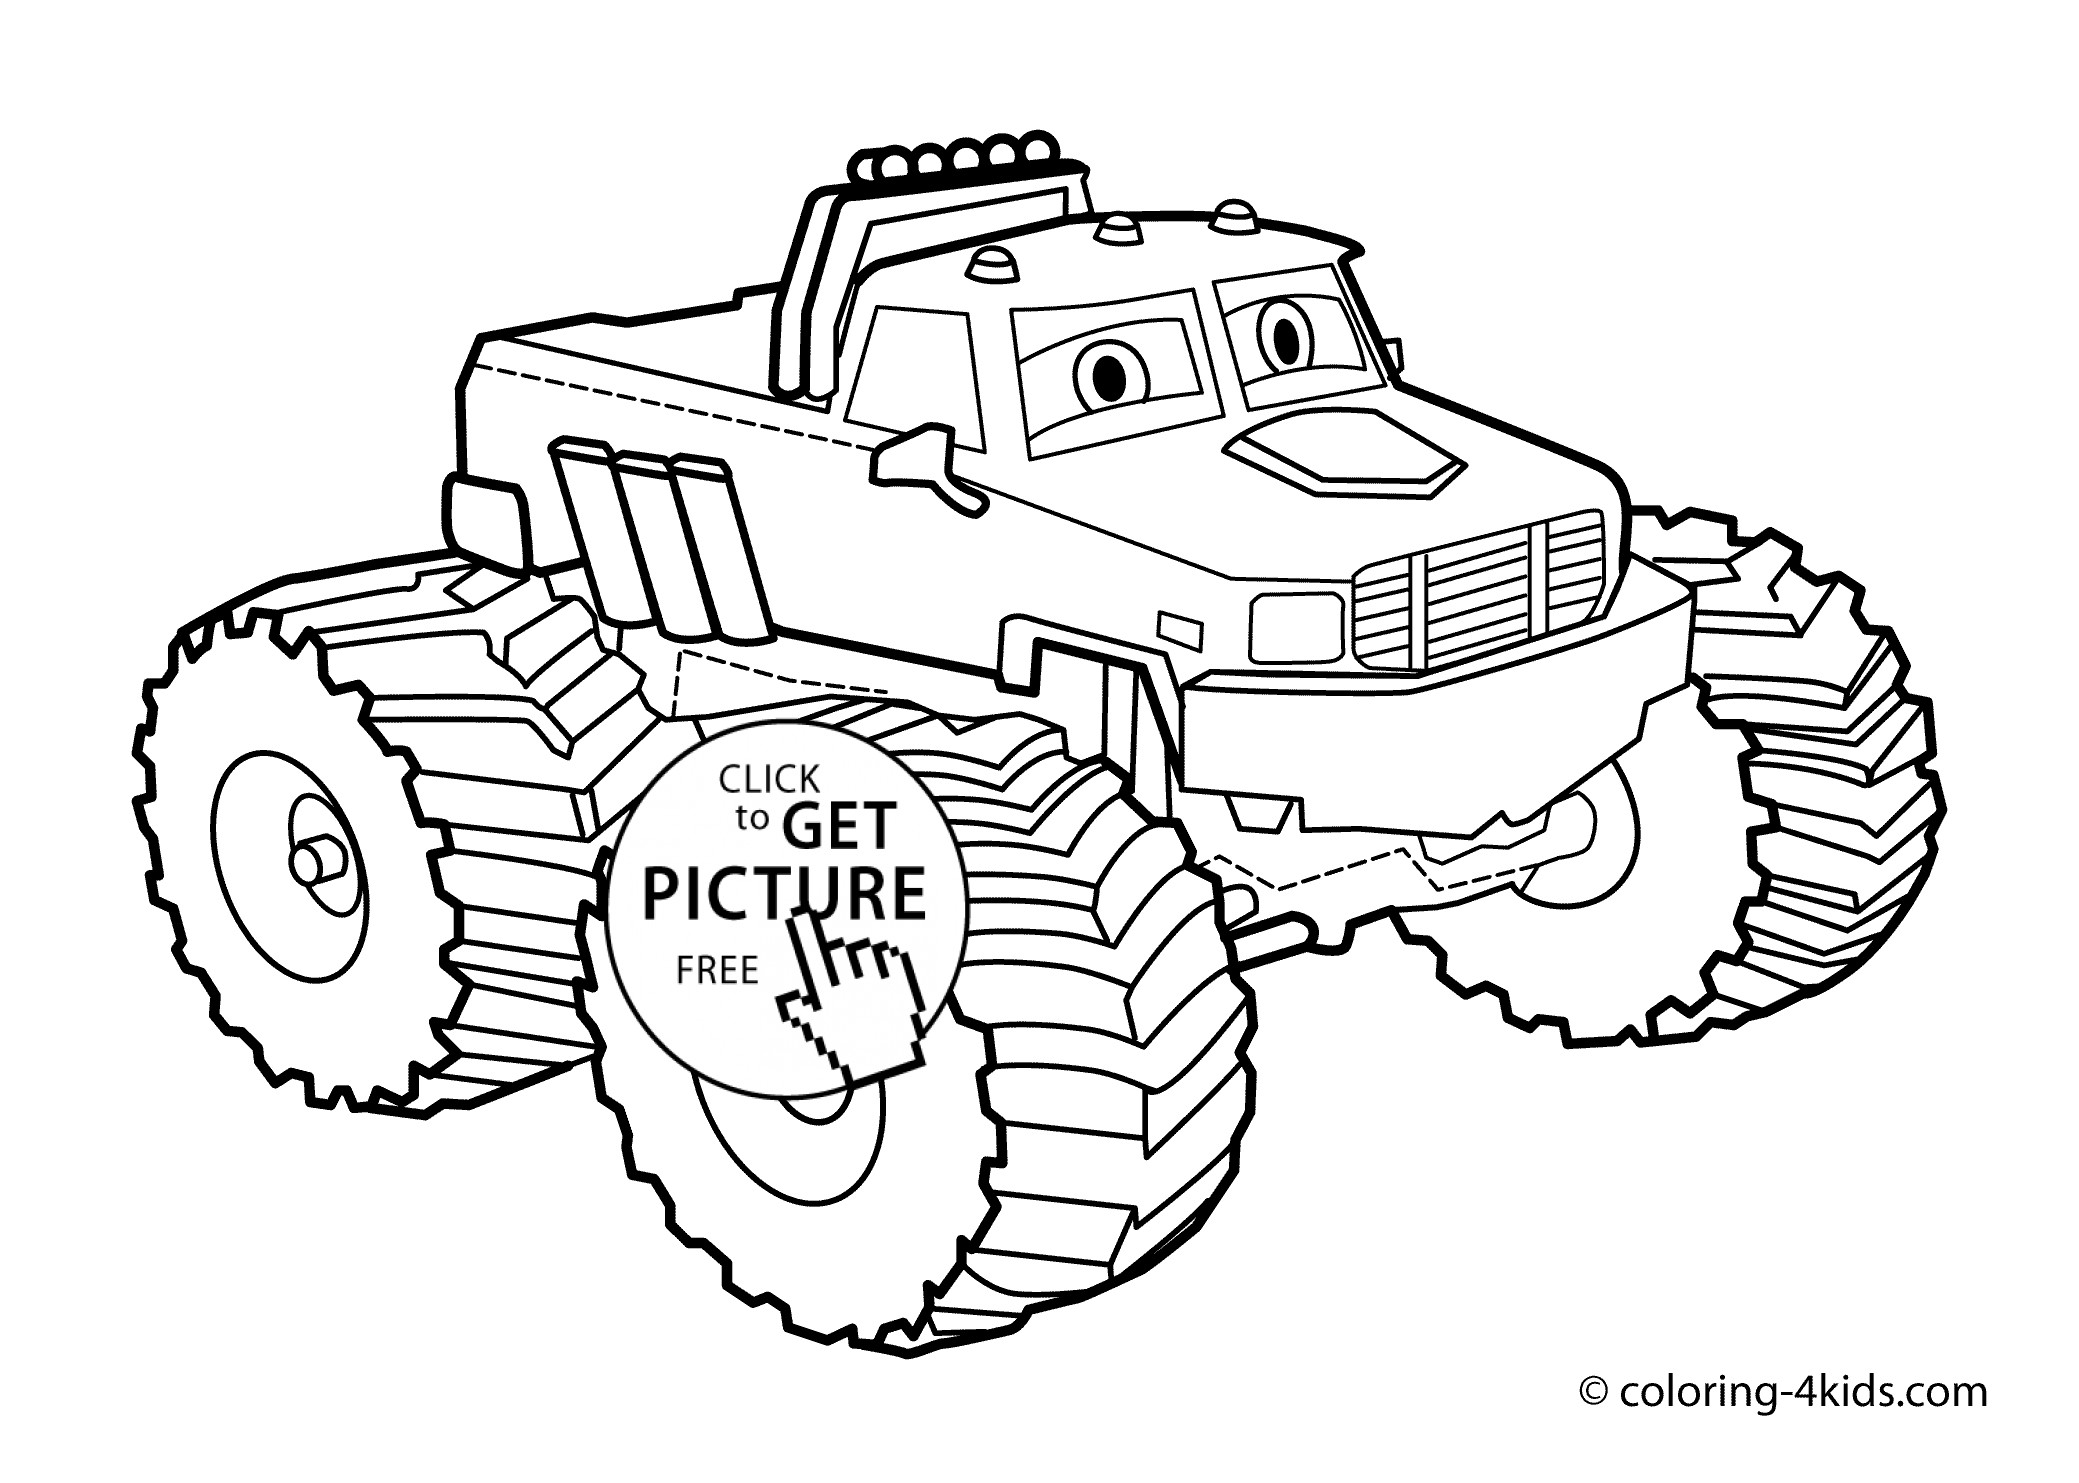 lifted truck coloring pages lifted truck coloring pages at getcoloringscom free coloring truck pages lifted